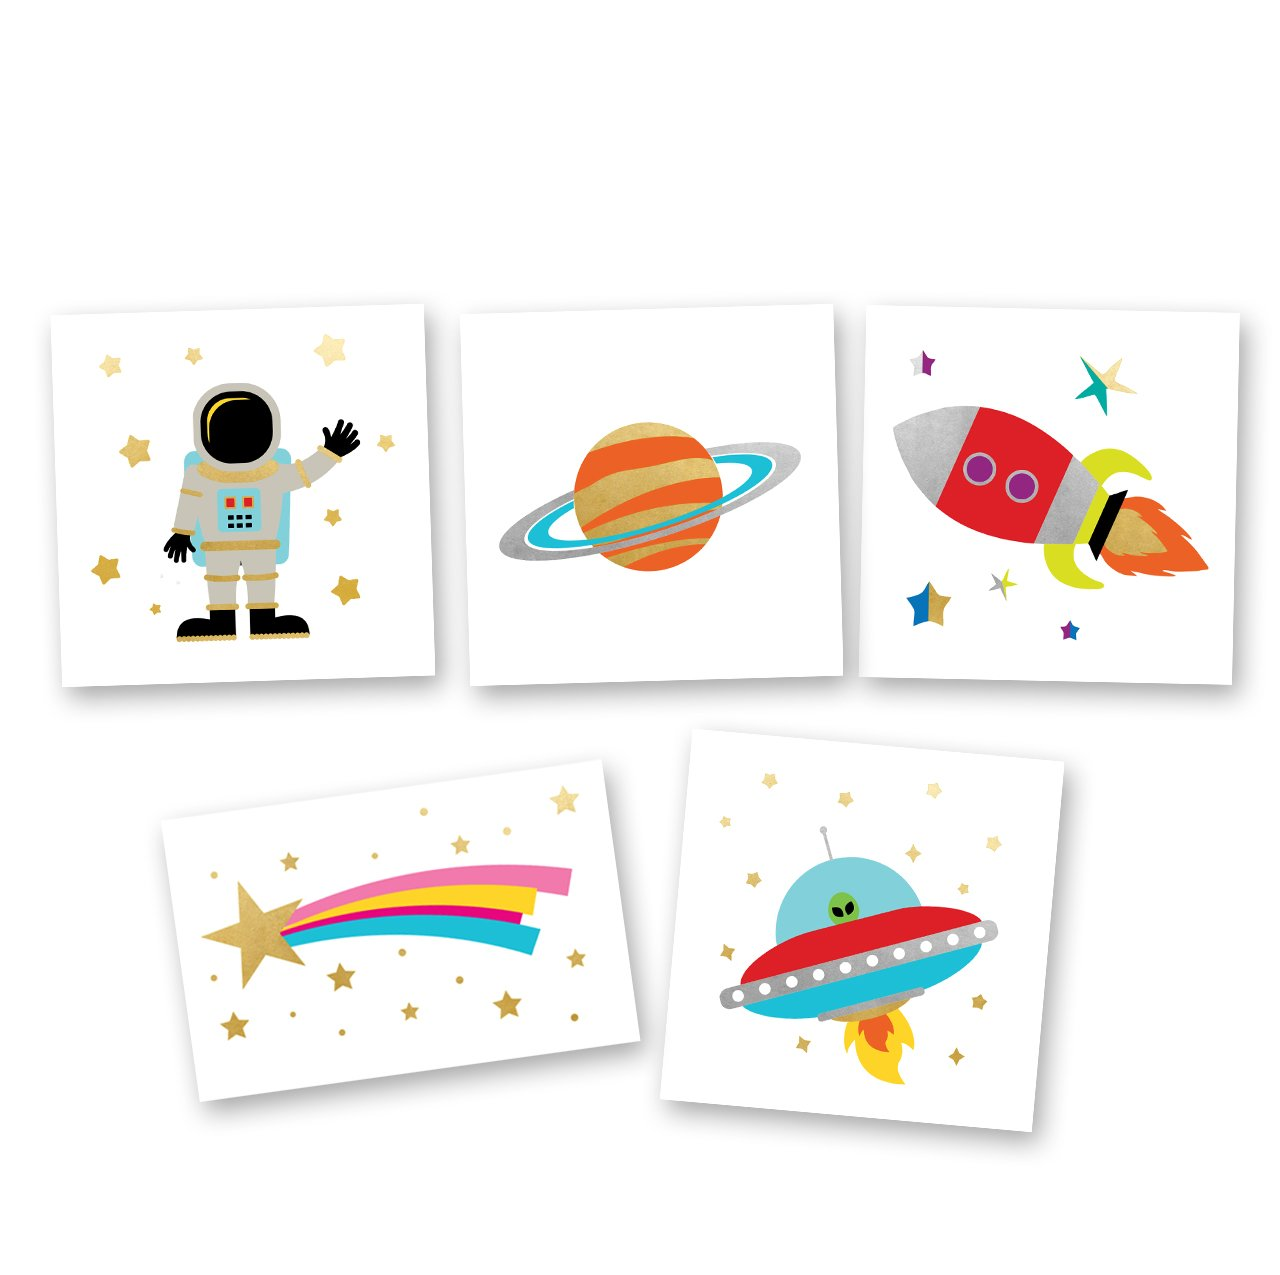 Space Explorer Variety Set includes 25 assorted premium waterproof colorful metallic kids temporary foil Fun Tats by Flash Tattoos, party favor